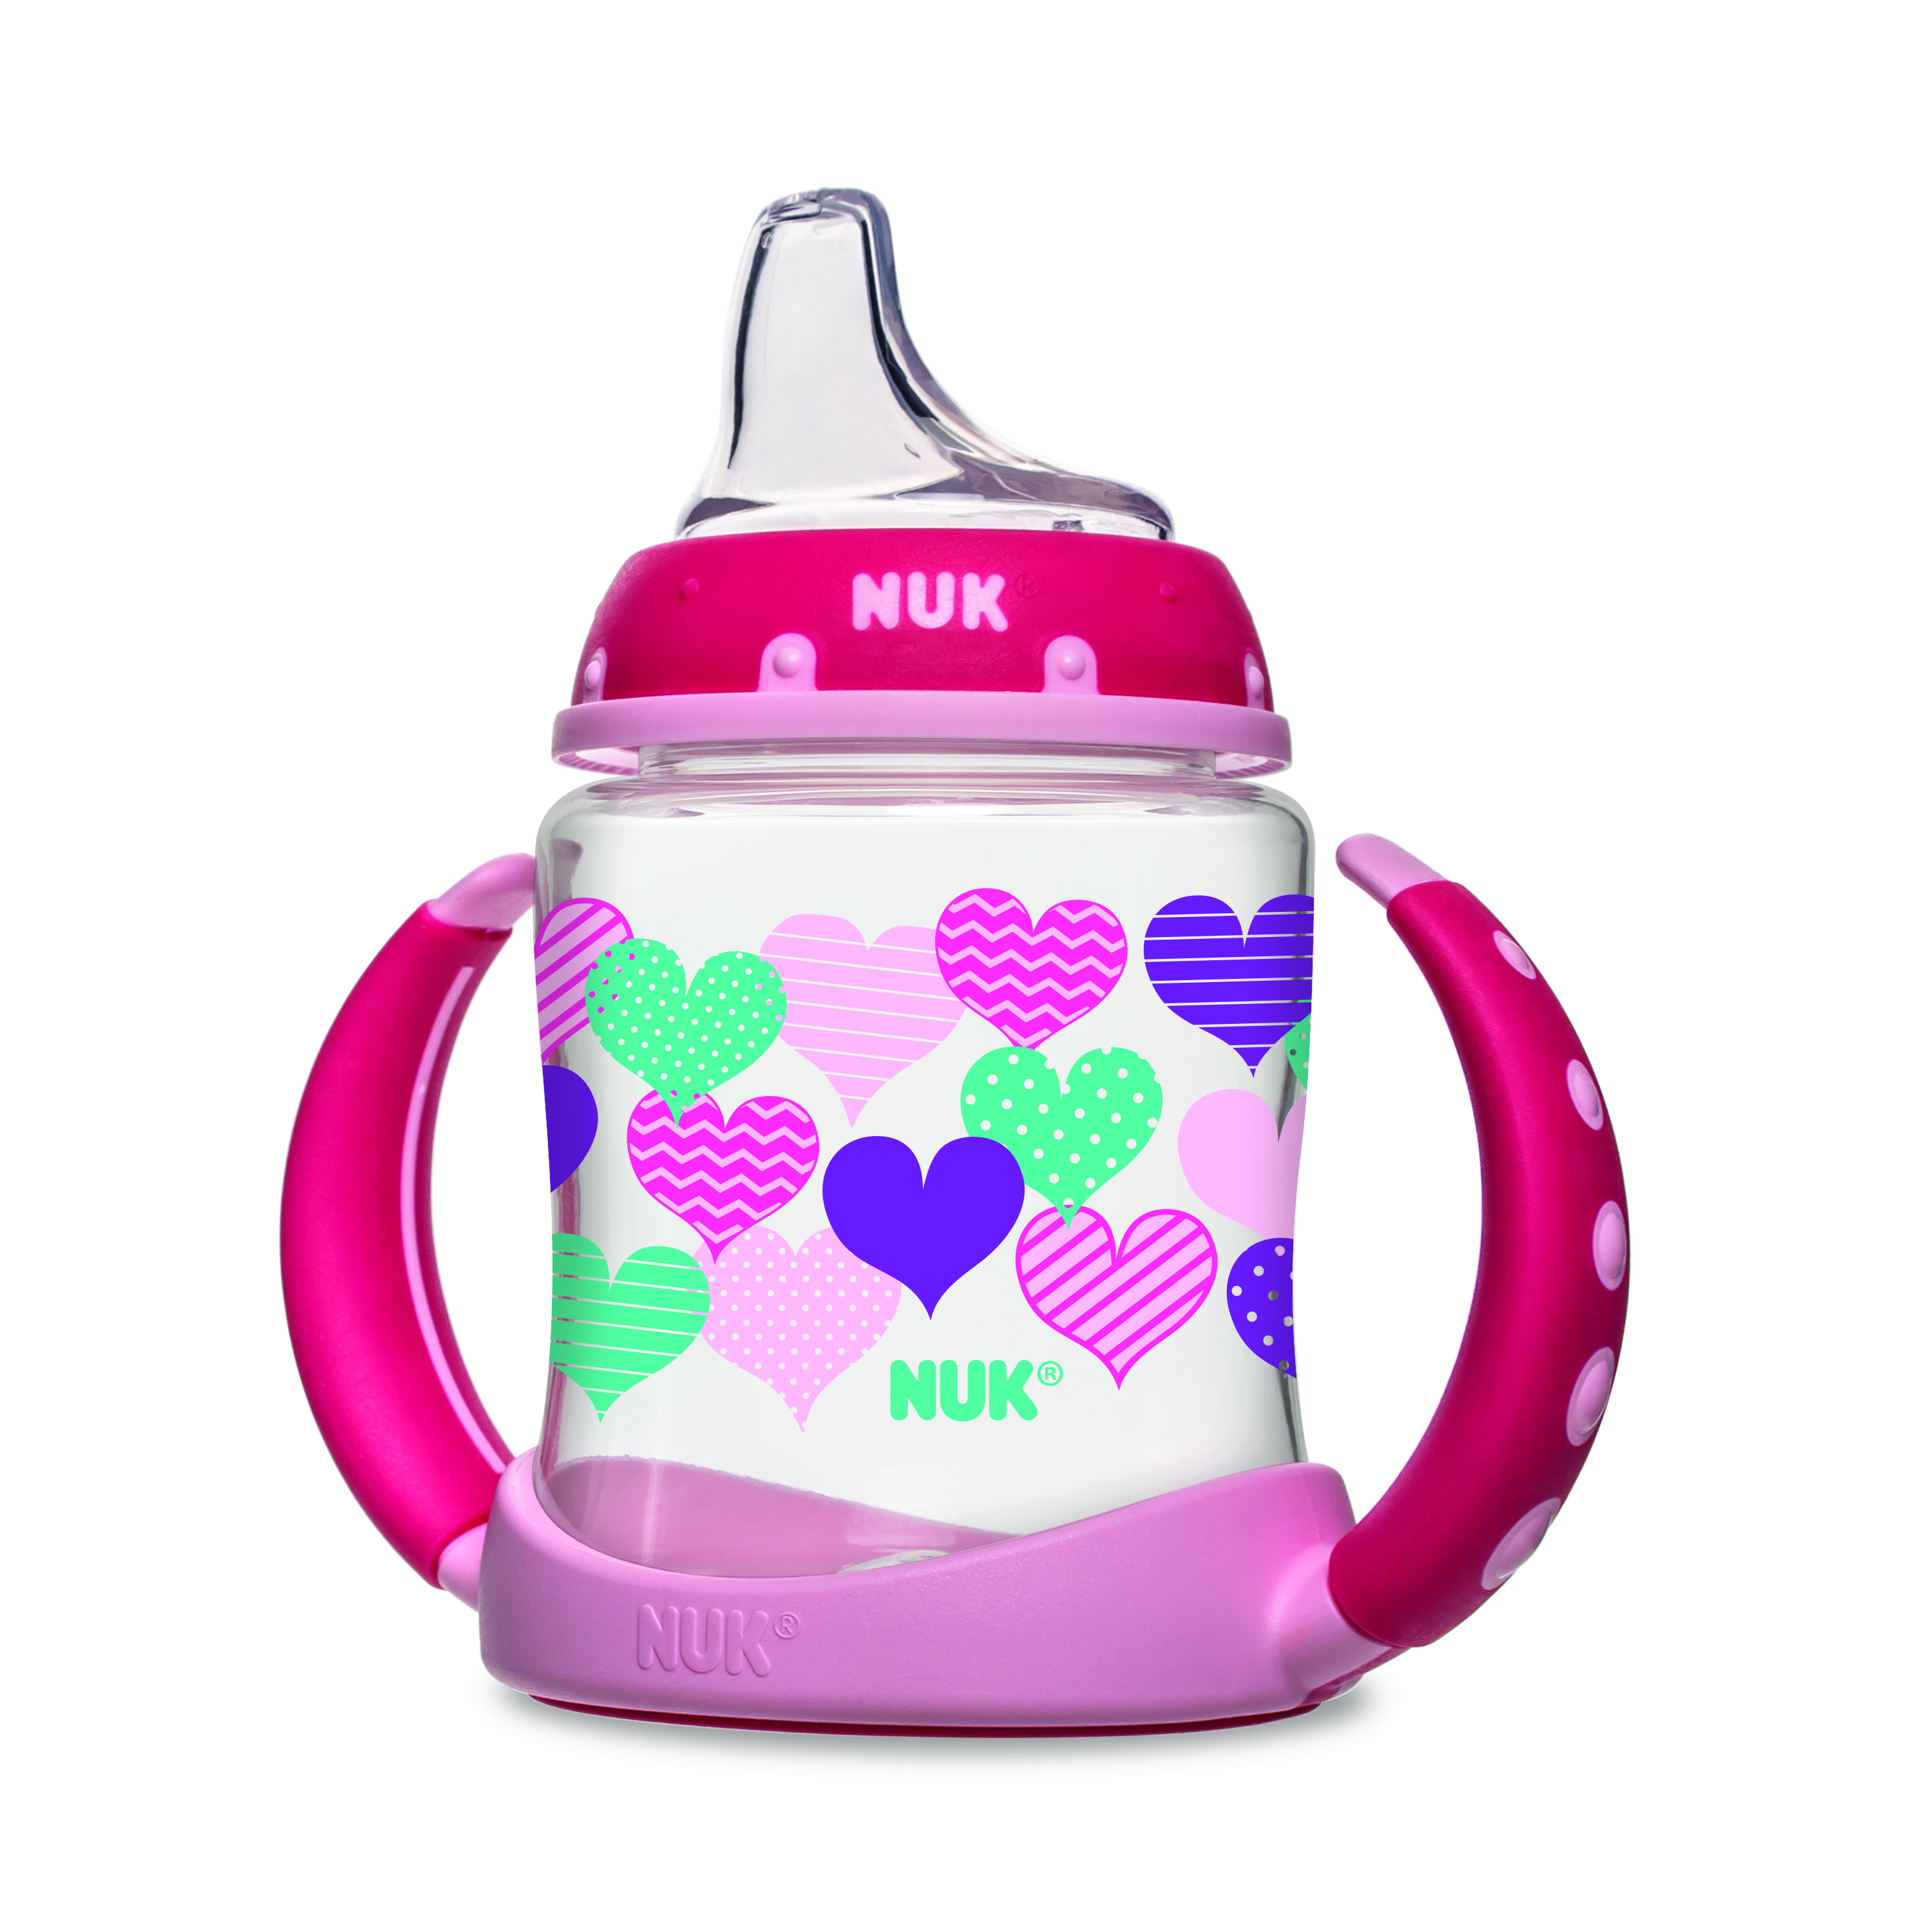 Nuk Learner Cup 6+m, Color May Vary, 1.0 CT